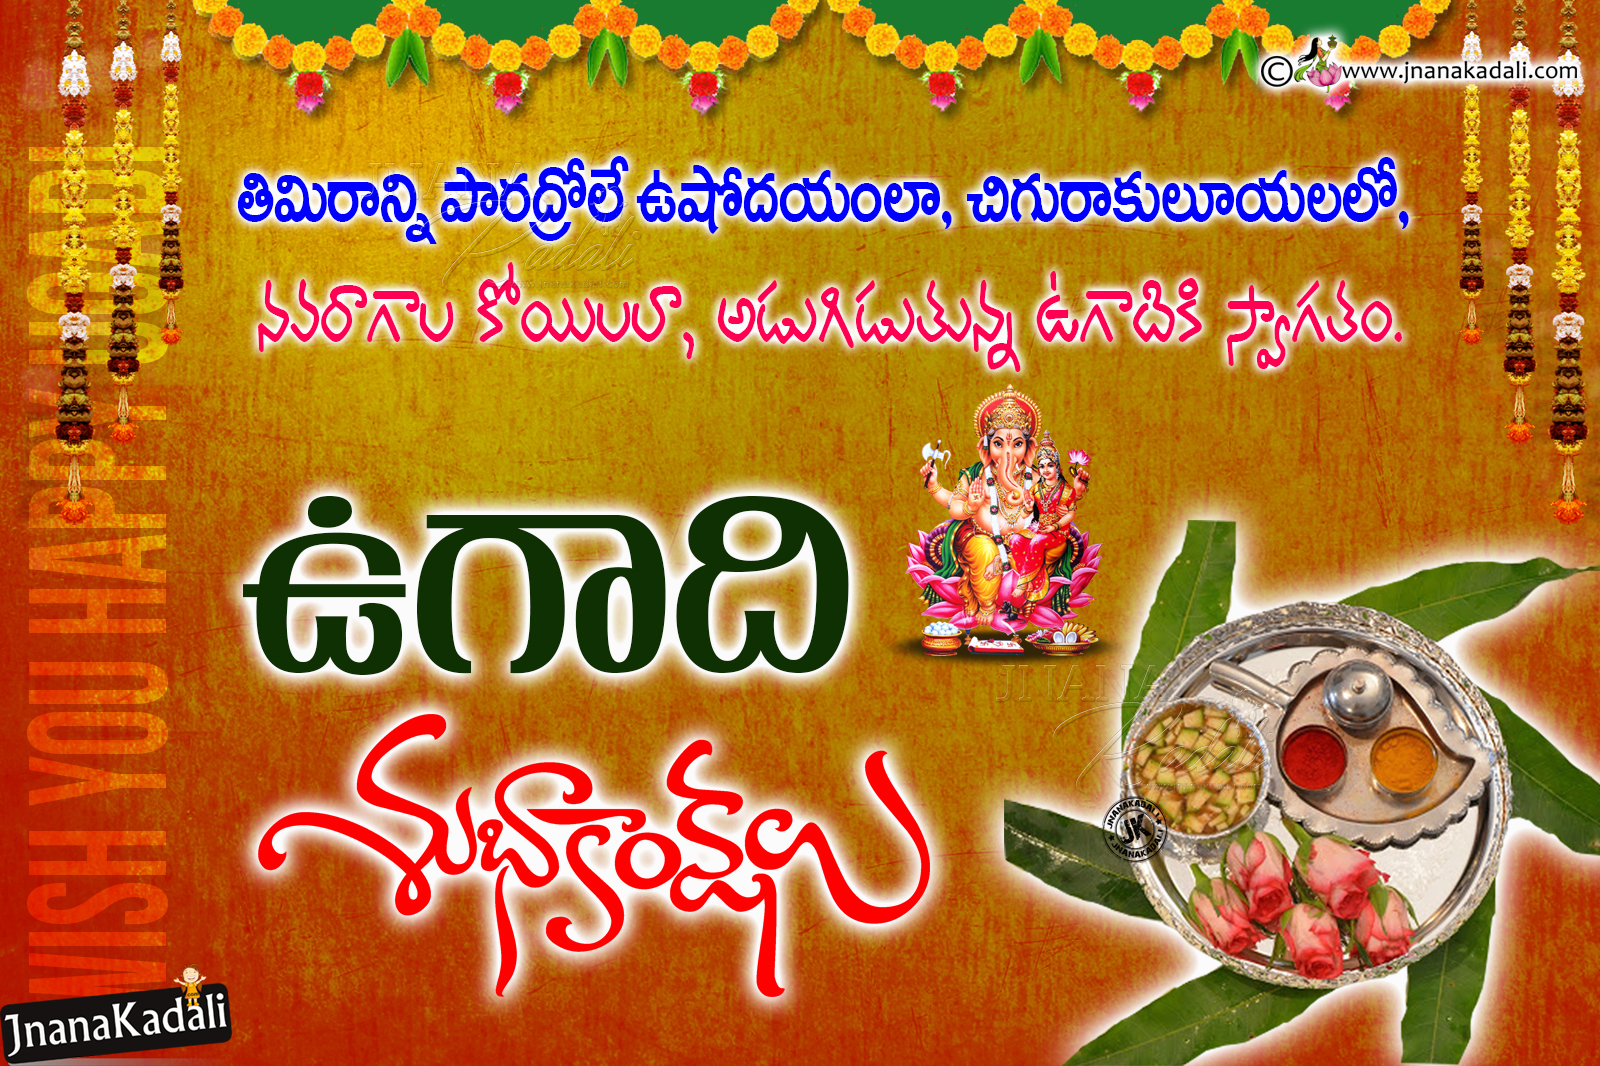 2018 Ugadi Greetings In Telugu With Hd Wallpapers Vilambinama